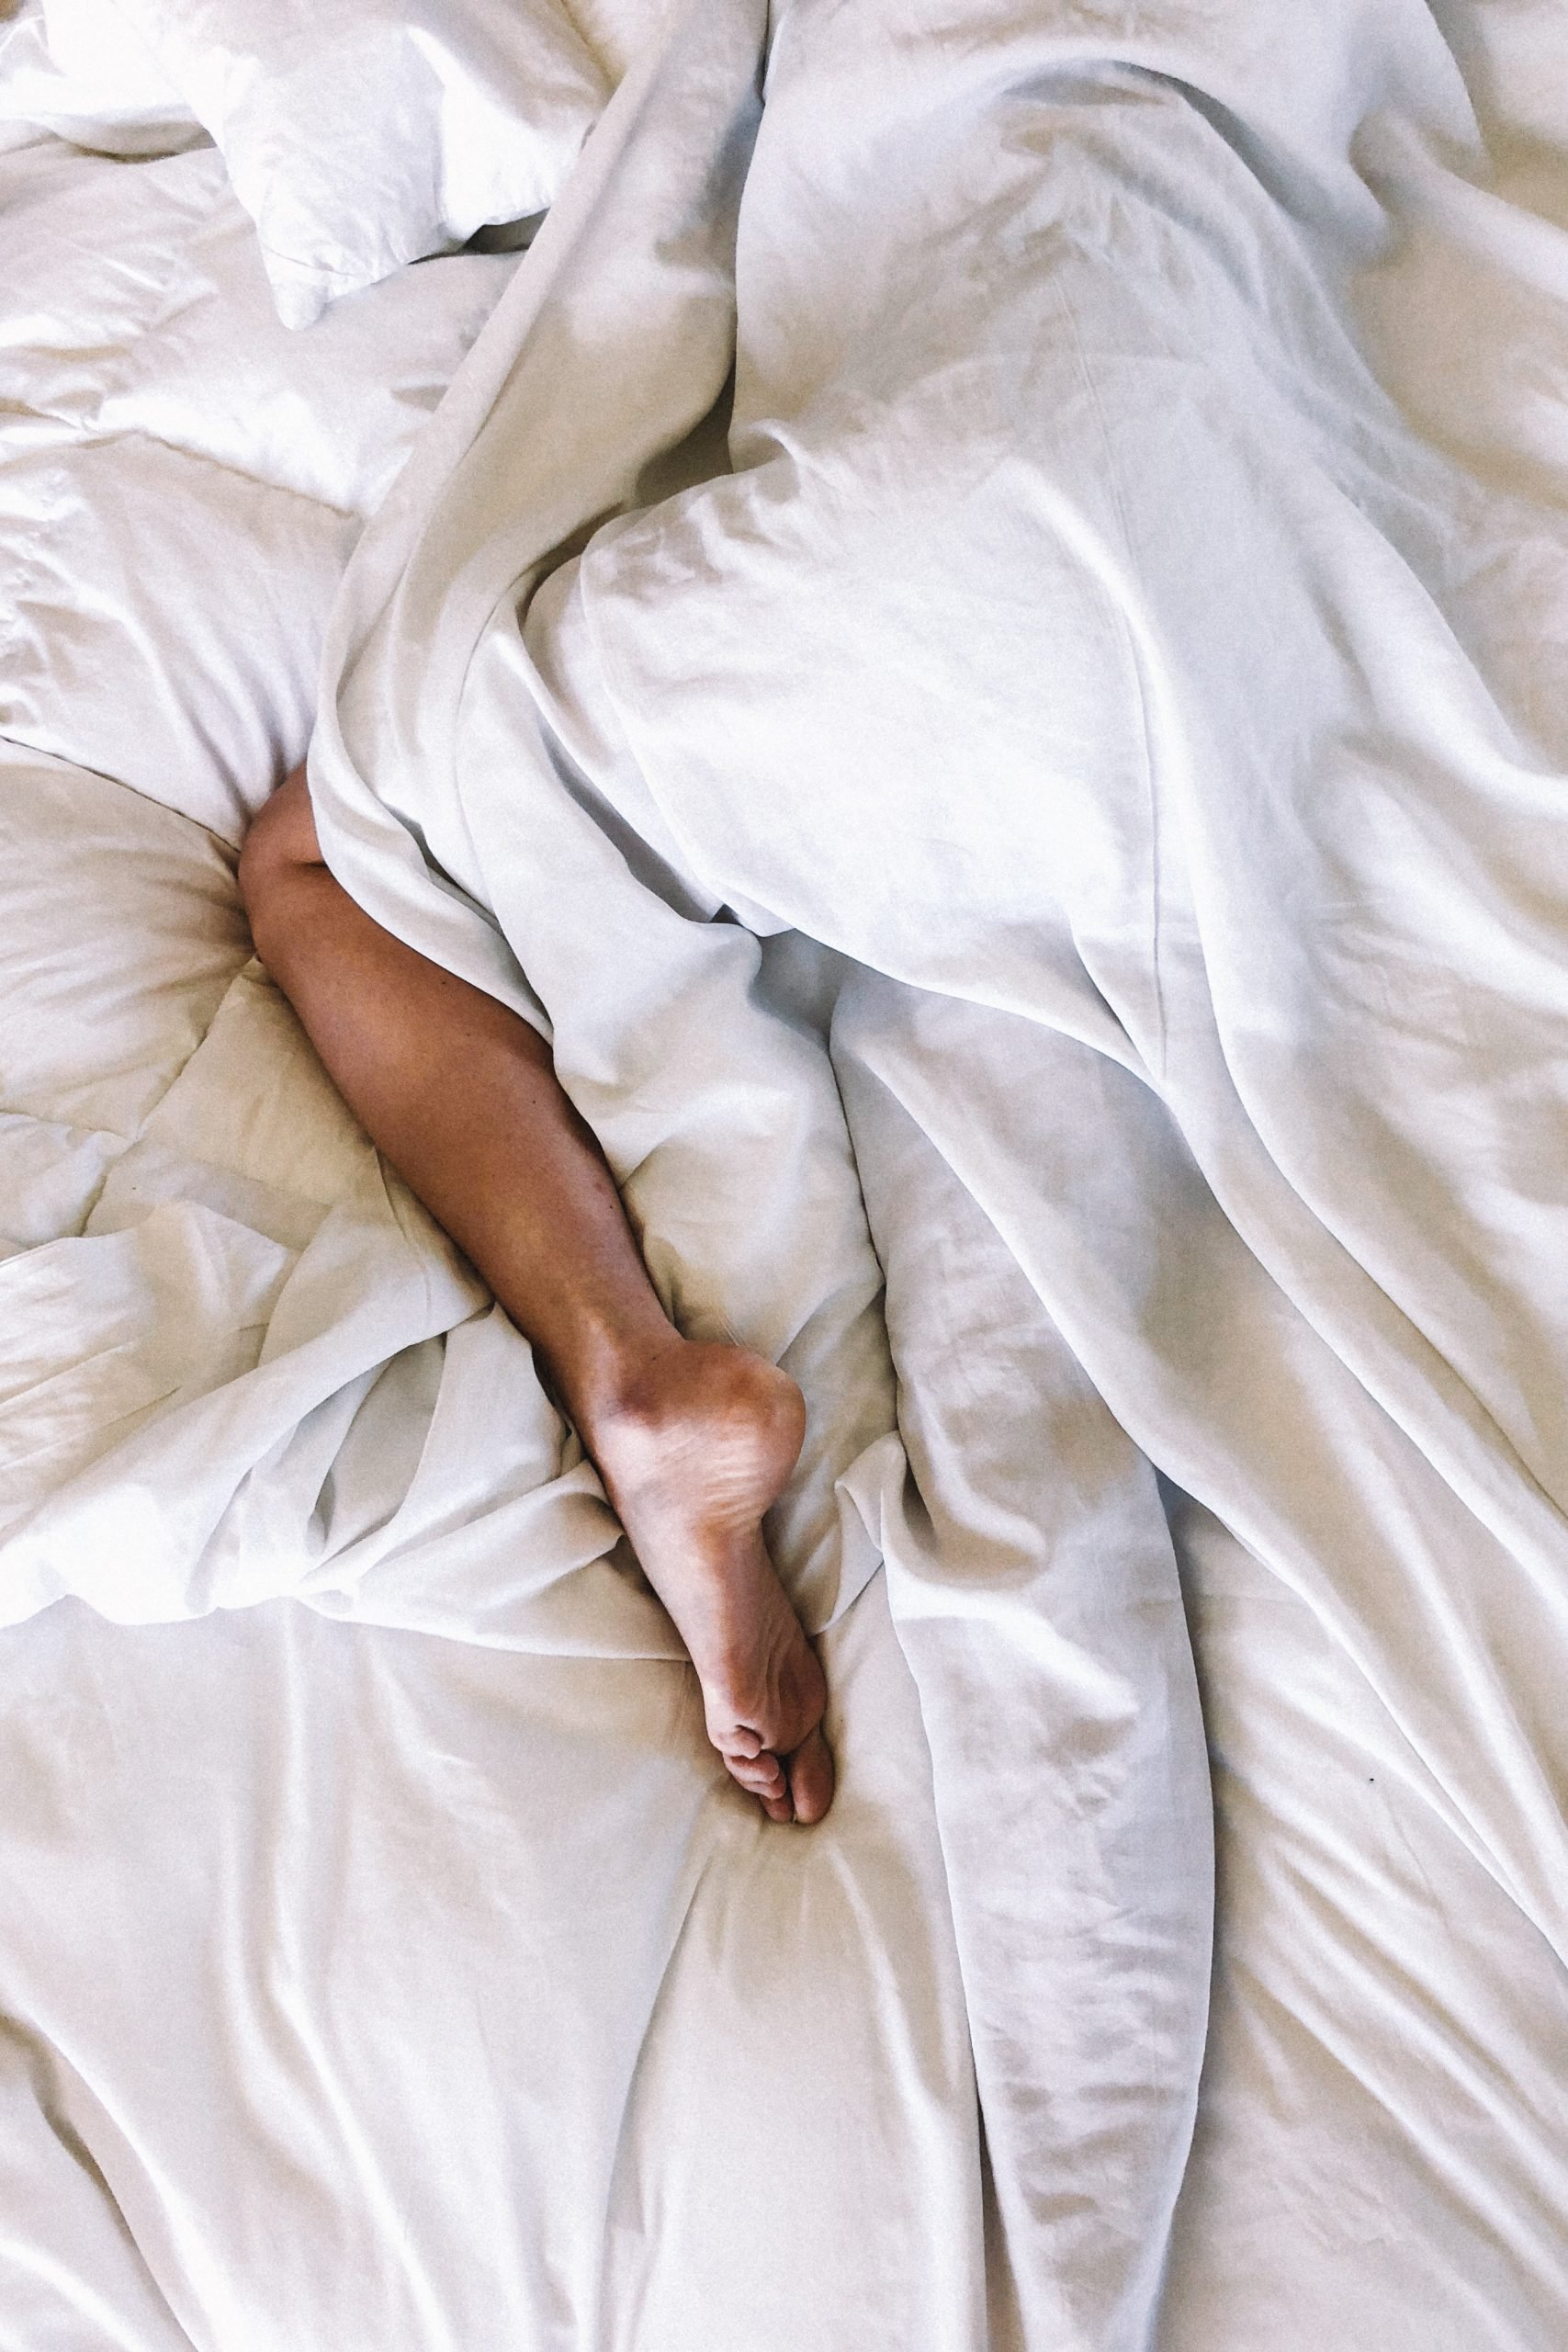 One leg sticking out of the covers